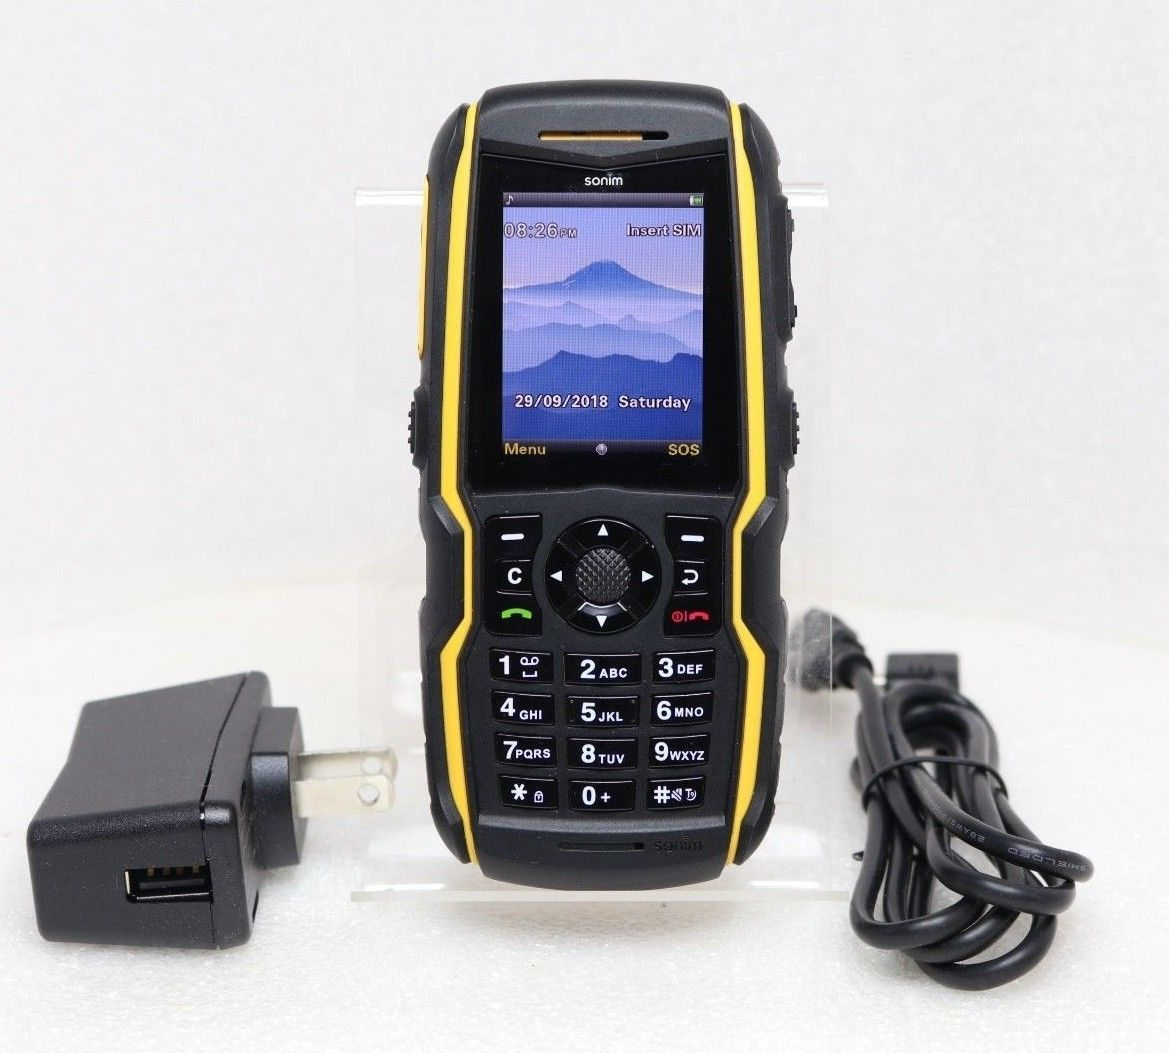 Sonim BOLT XP5520 (GSM UNLOCKED) Rugged Waterproof Cell Phone